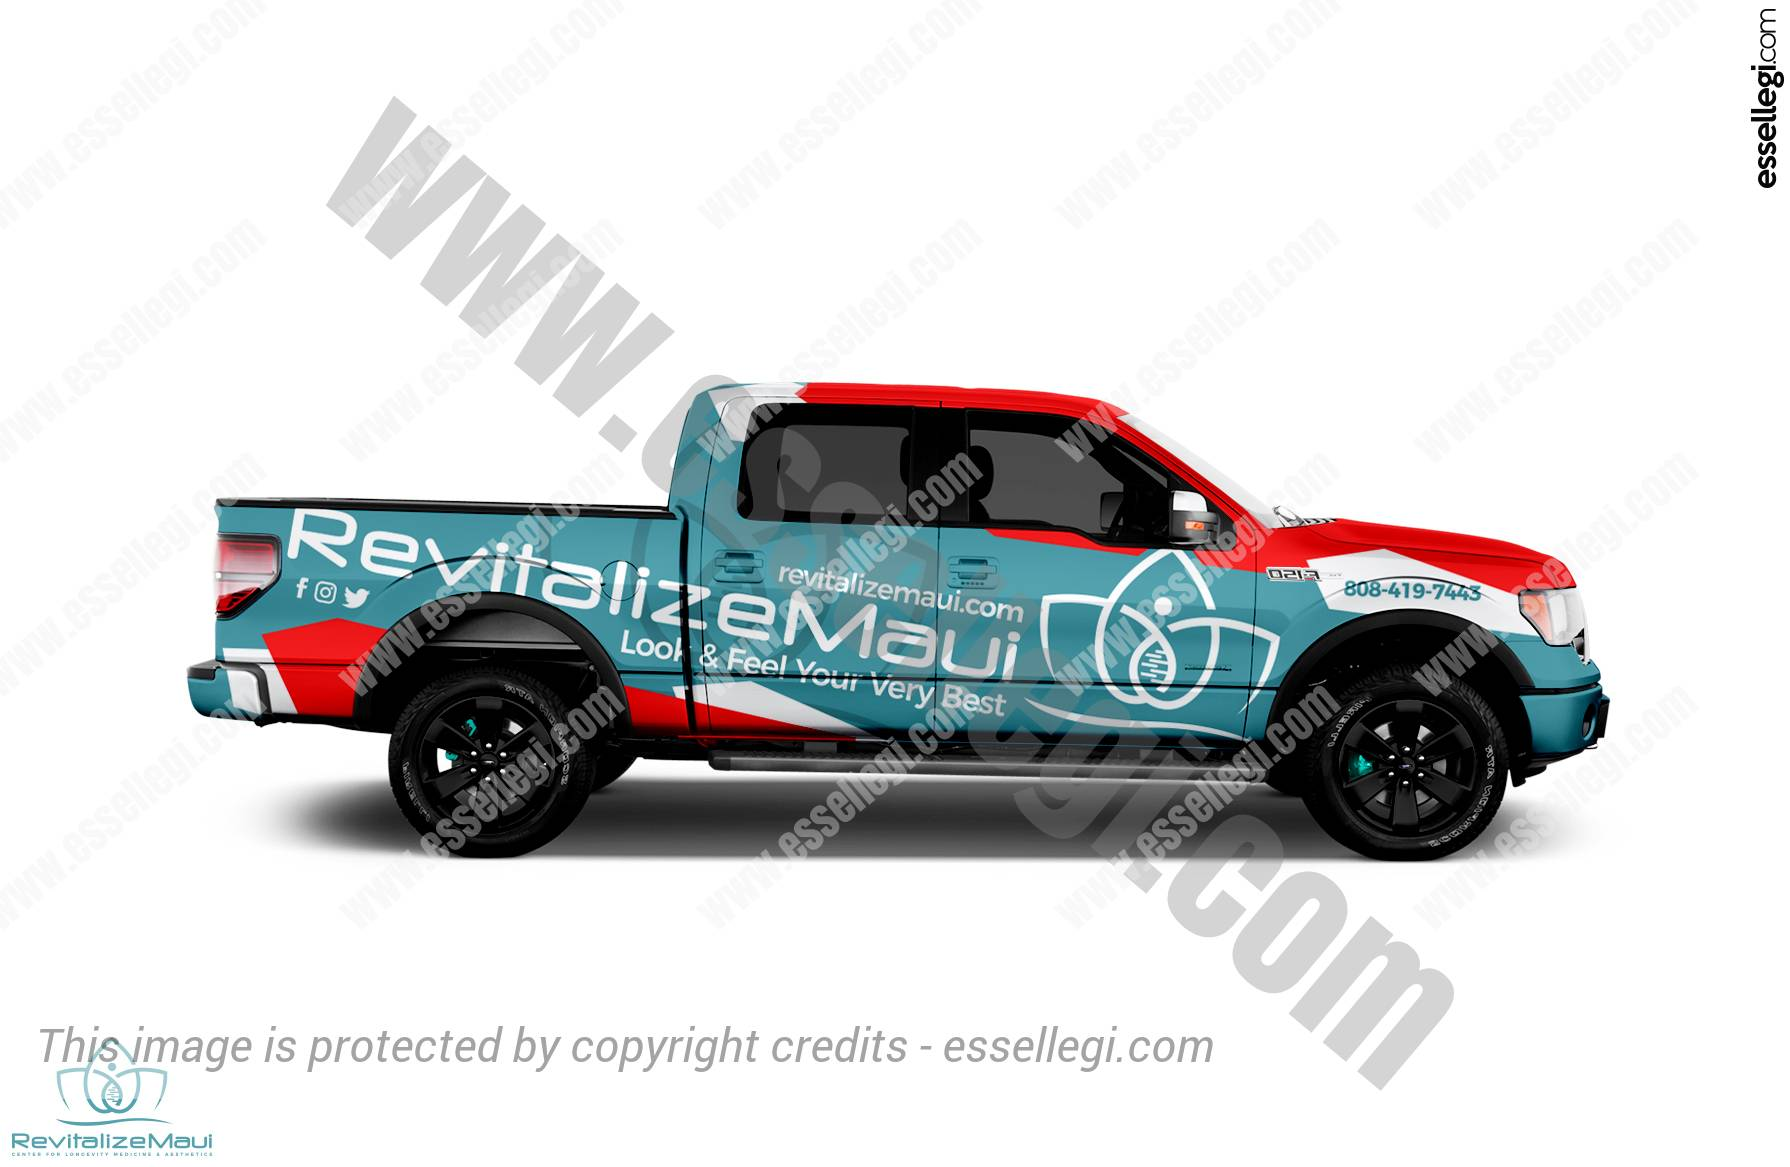 F150 Wrap. Ford F150 | Truck Wrap Design by Essellegi. Ford Truck, Ford Trucks Ford F150, Truck Wrap, Truck Wraps, Wrap Design, Vehicle Signage, Vehicle Wrap, Truck Signs, Vinyl Wrap, Truck Graphics, Vehicle Signs Vehicle Wraps, Vehicle Graphics, Truck Wrapping, Vehicle Wrapping Wrapped, Custom Wraps, Custom Graphics, Vinyl Wraps, Full Wrap Wrap Advertising, Commercial Wraps, Custom Design by Essellegi.